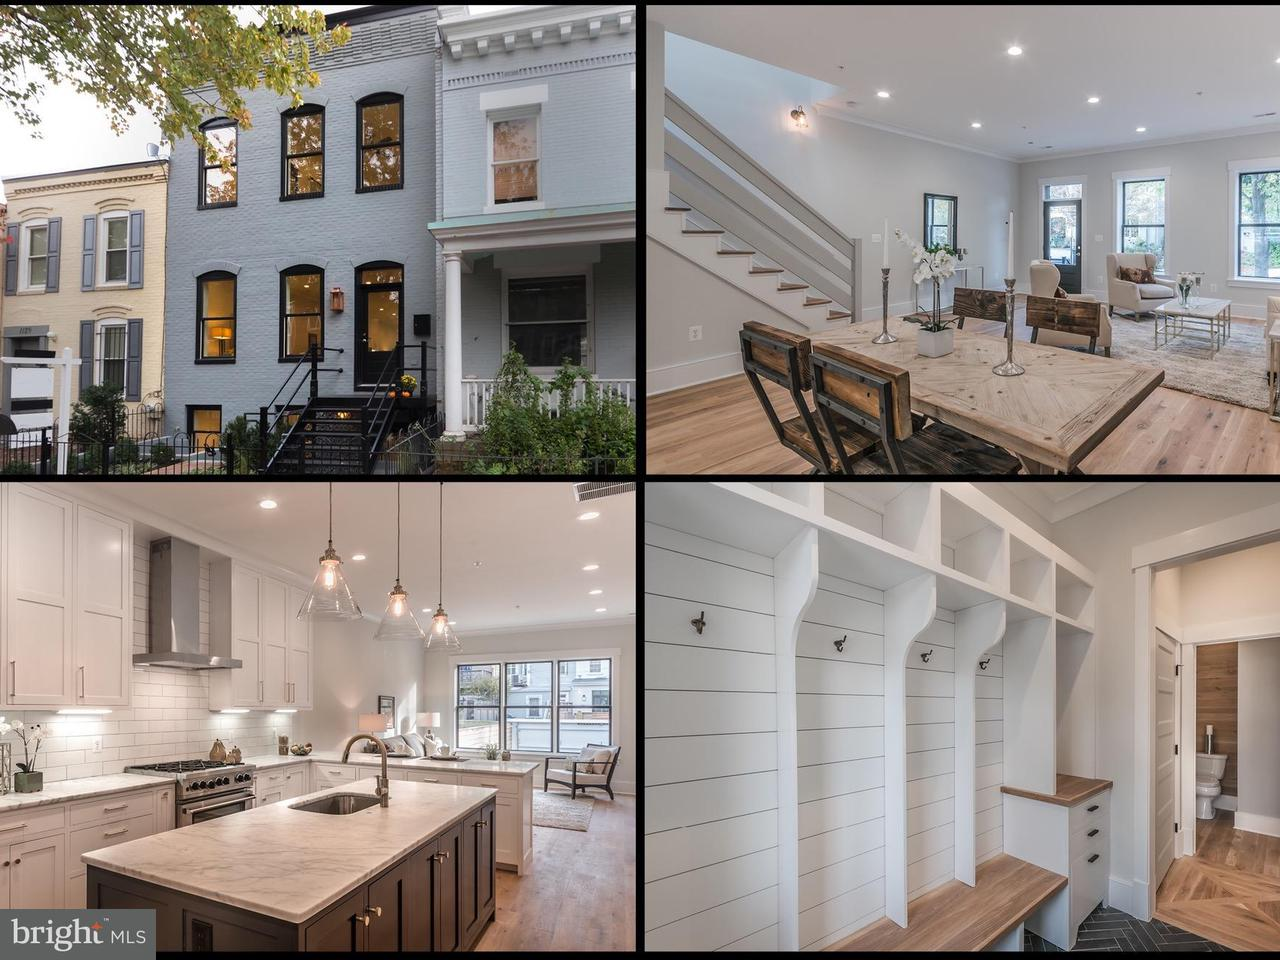 Single Family Home for Sale at 1127 C ST NE 1127 C ST NE Washington, District Of Columbia 20002 United States